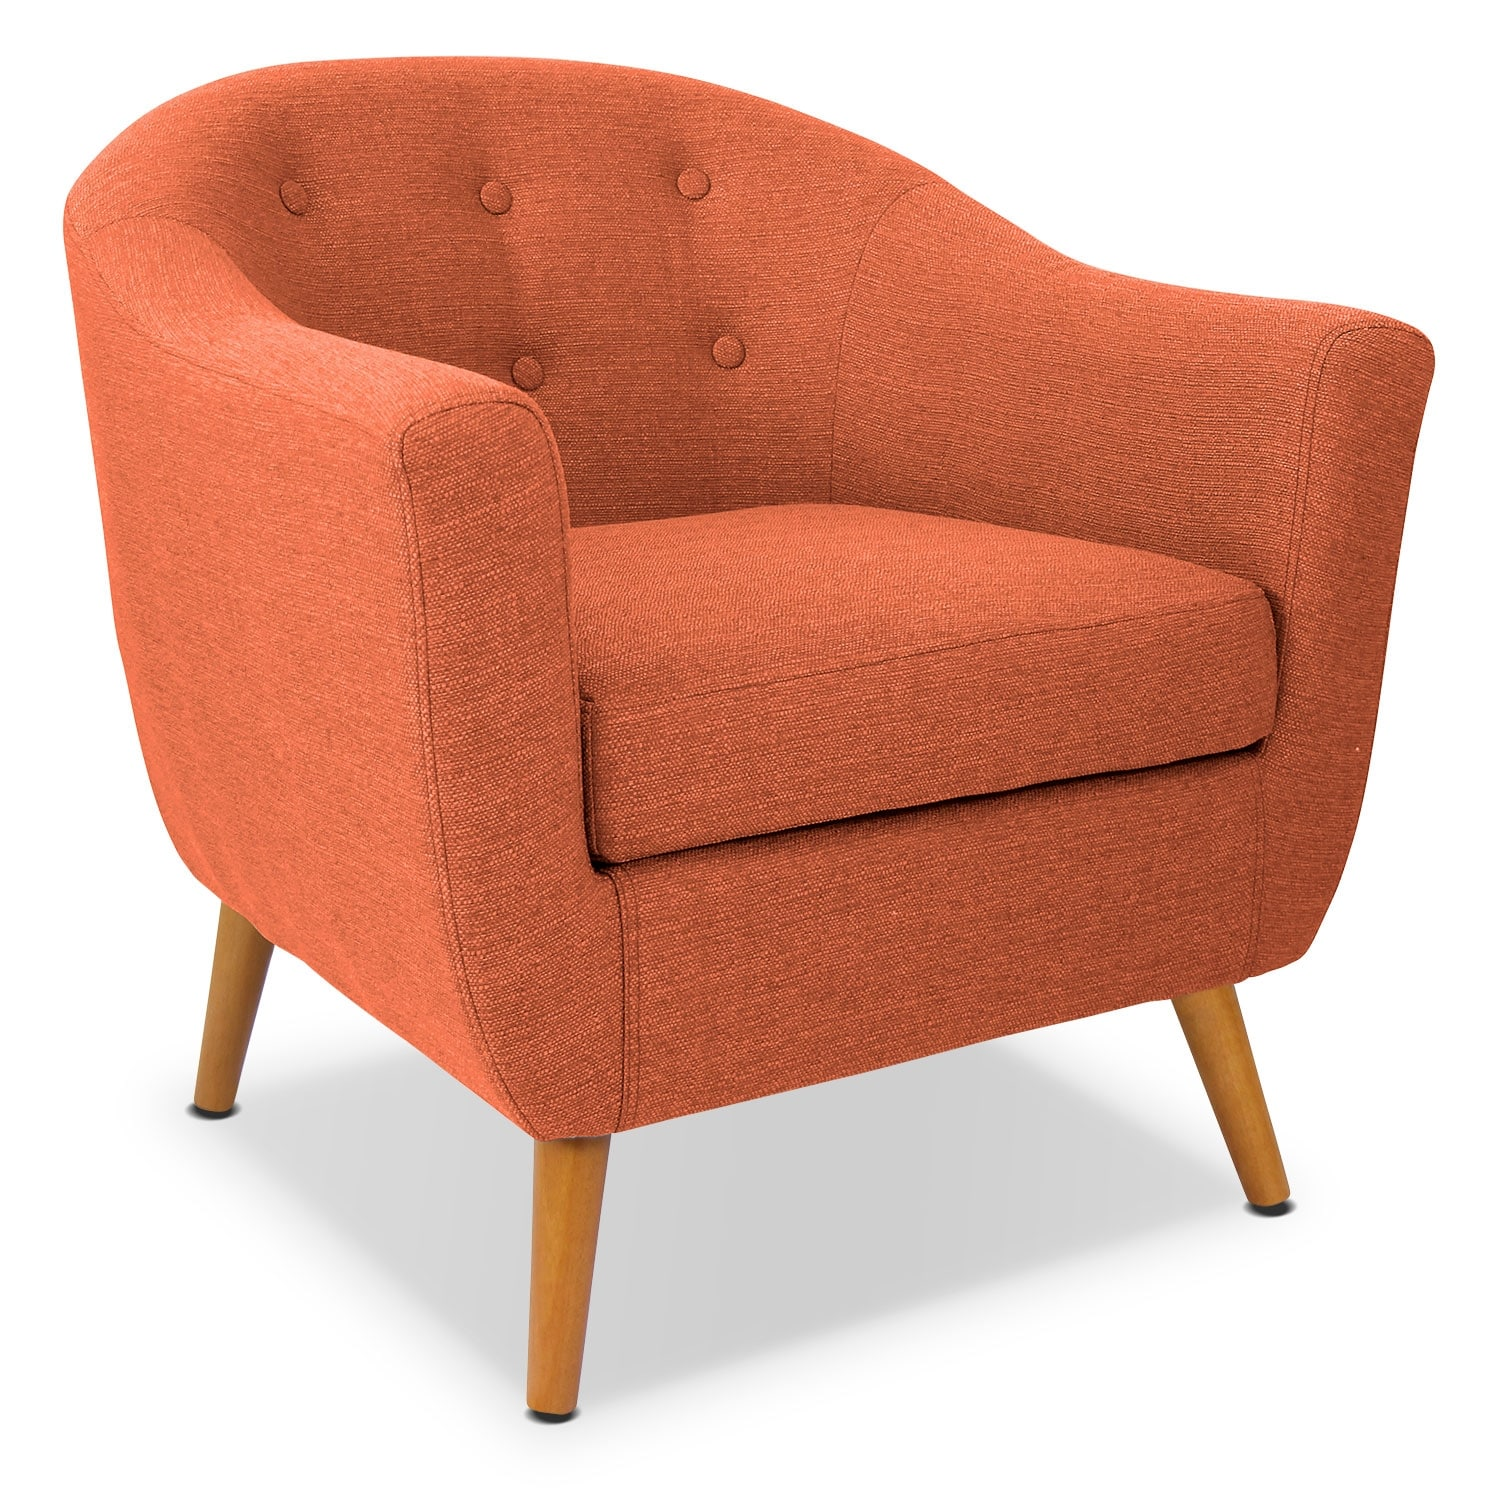 Norman accent chair orange american signature furniture for Orange living room chairs